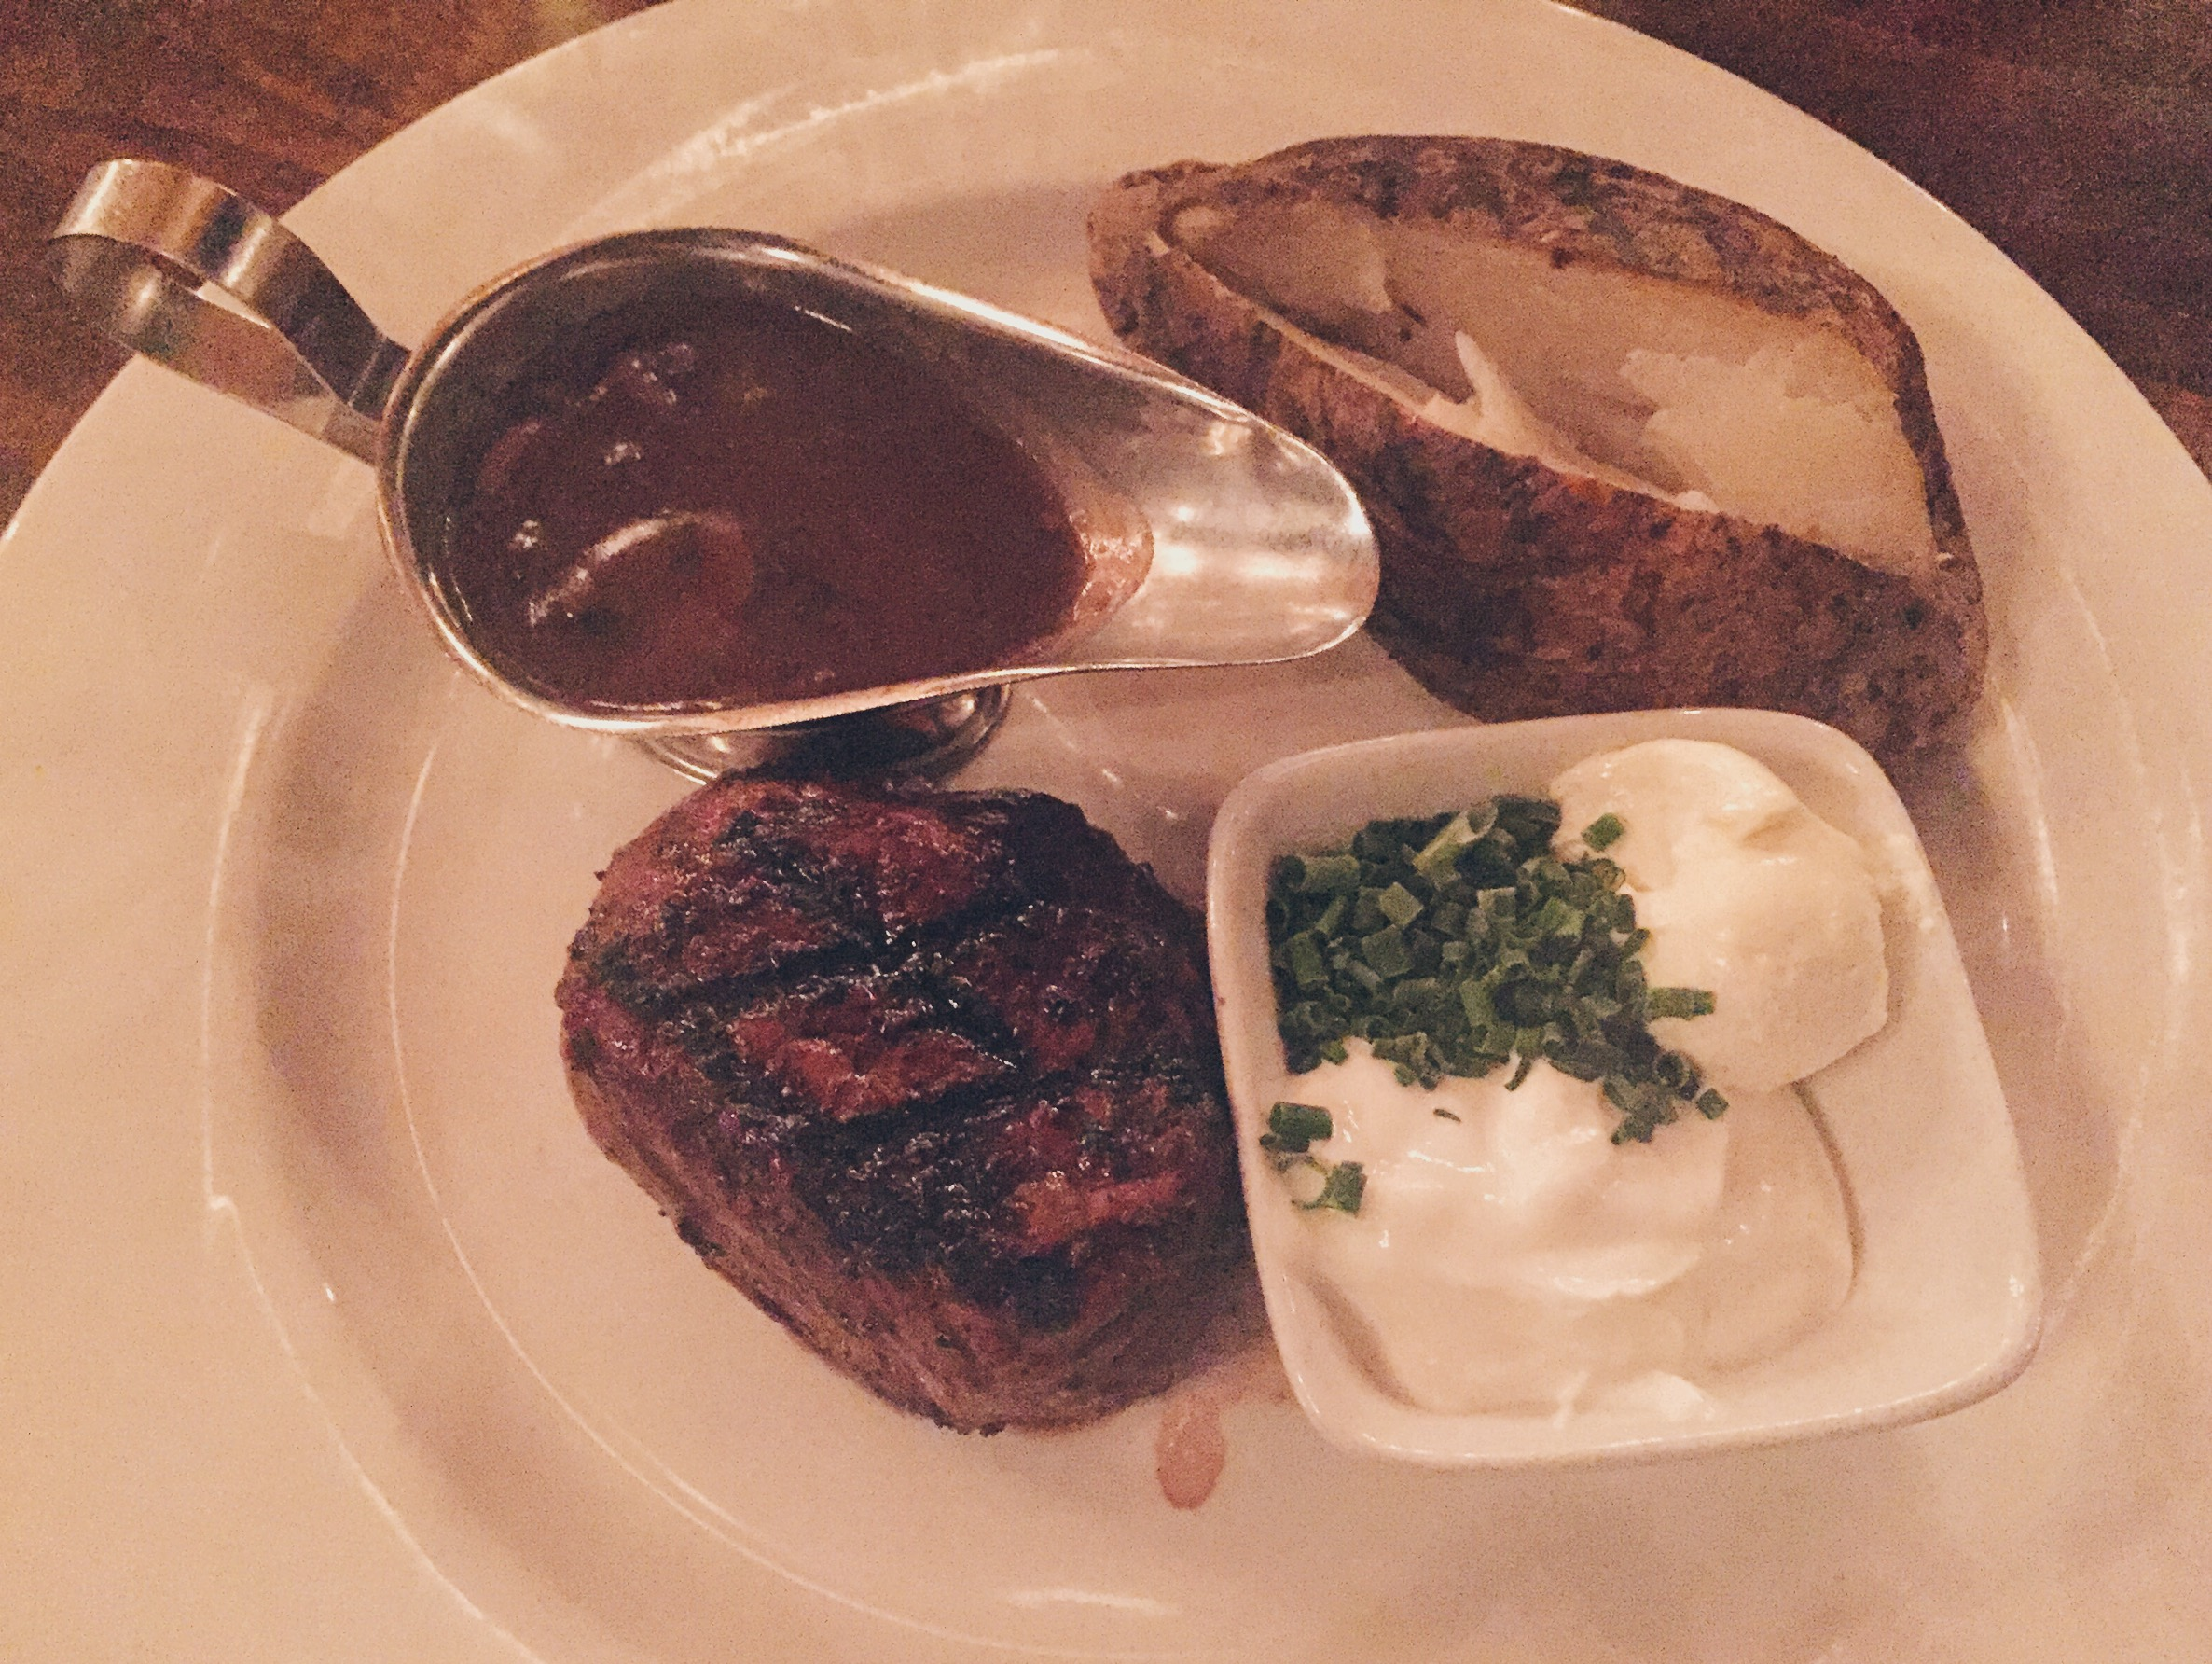 Smiths Bro Steakhouse - 7oz Steak with Mushroom Cabernet Sauce with Loaded Baked Potato - HELLOTERI